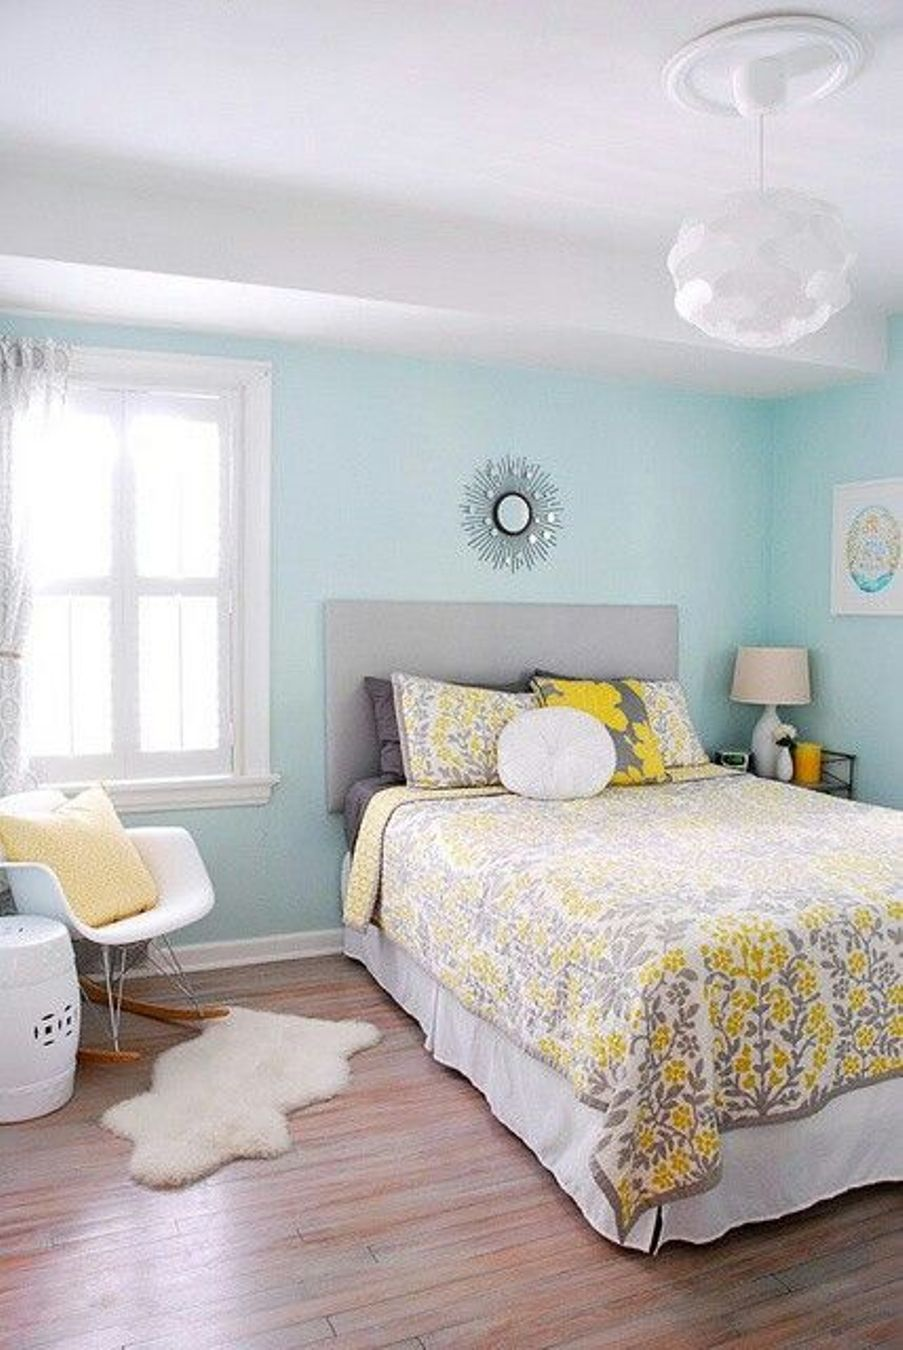 Best Paint Colors For Small Room – Some Tips Small 400 x 300